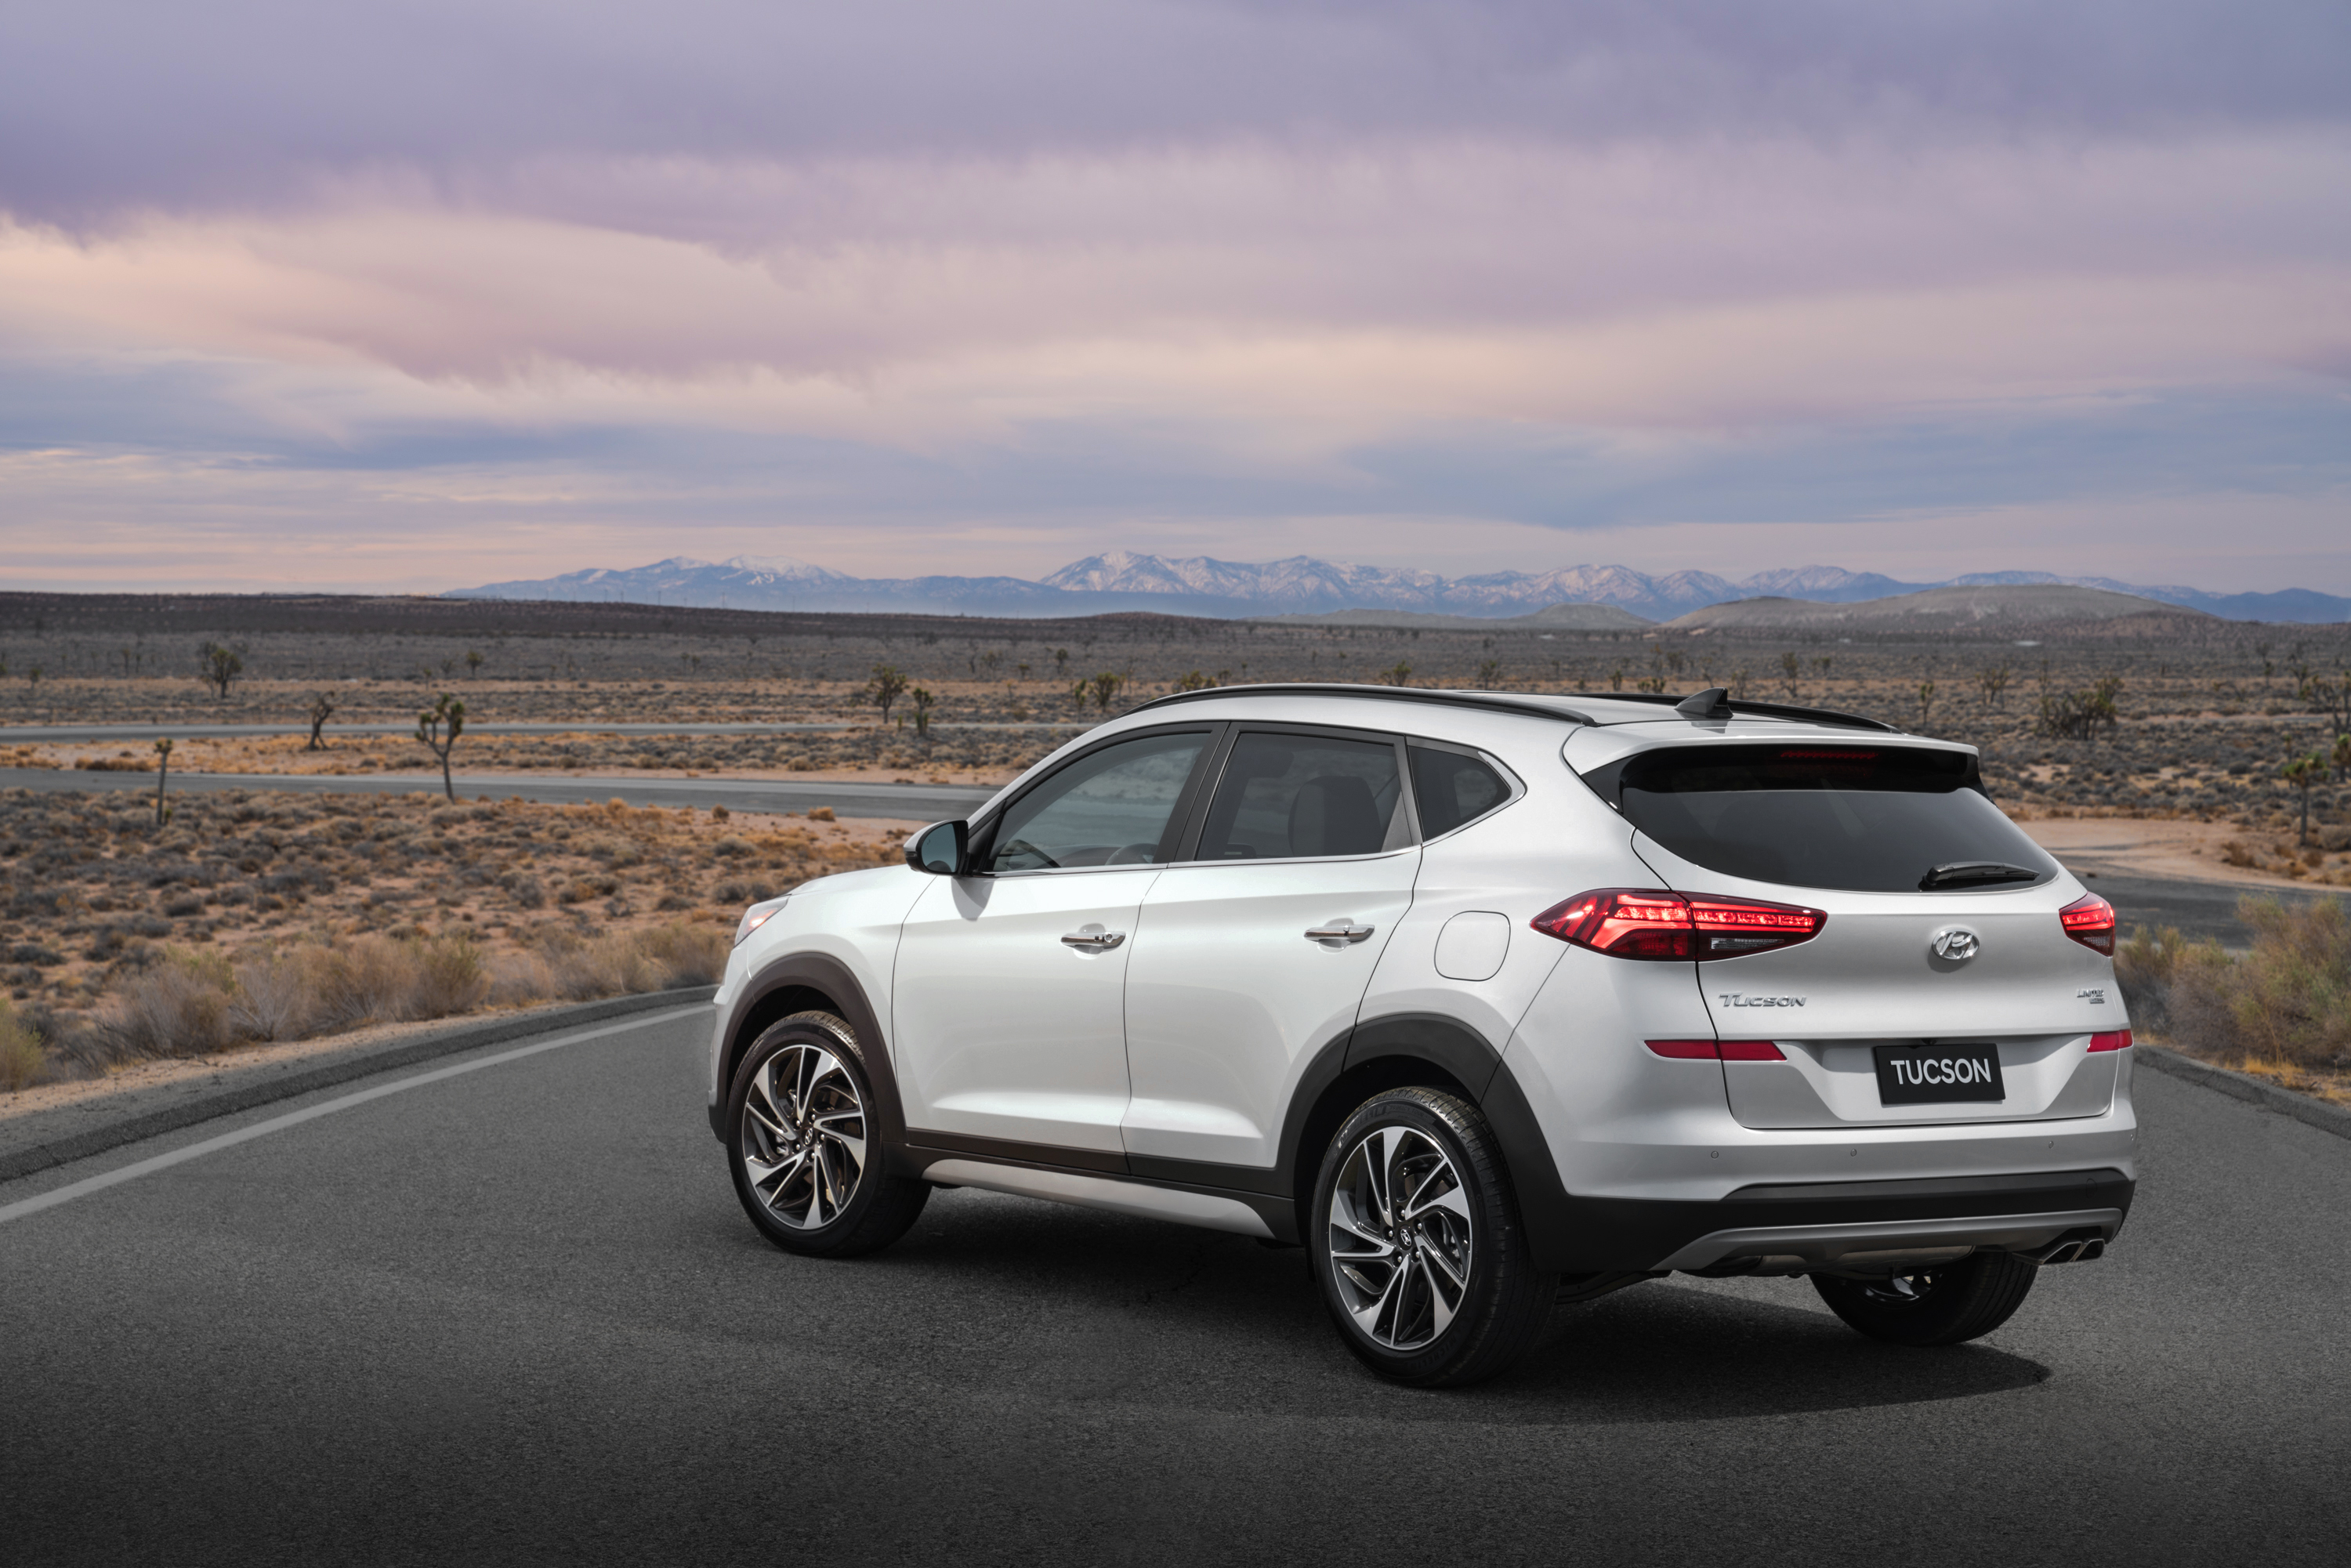 2019 hyundai tucson revealed (a week after the 2018 sport model